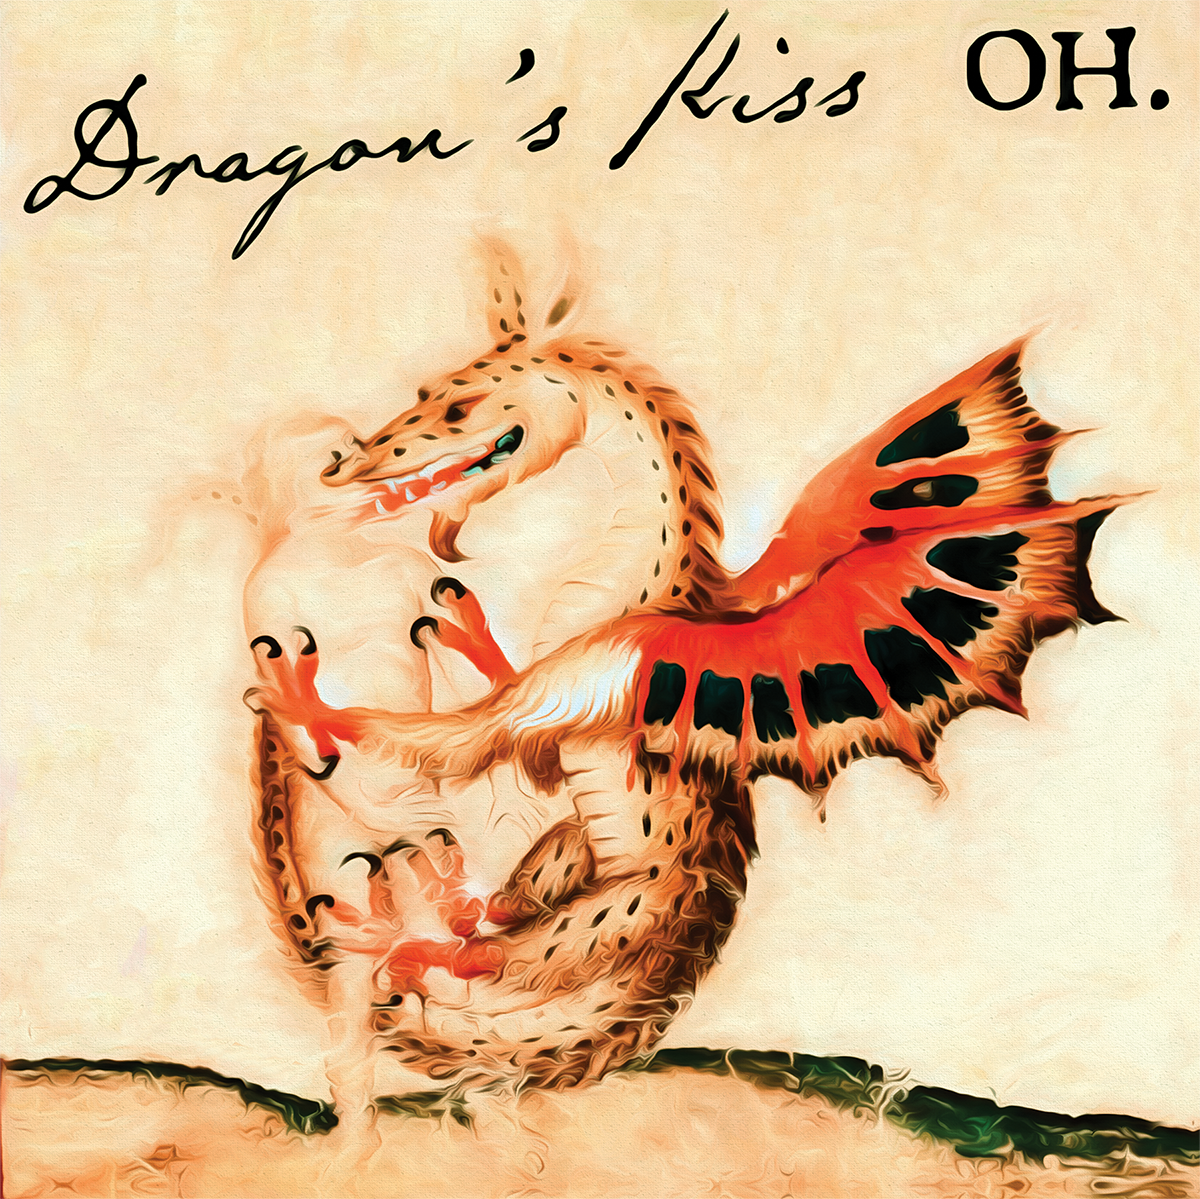 """Dragon's Kiss from the ""Metallia"" album by Oh."